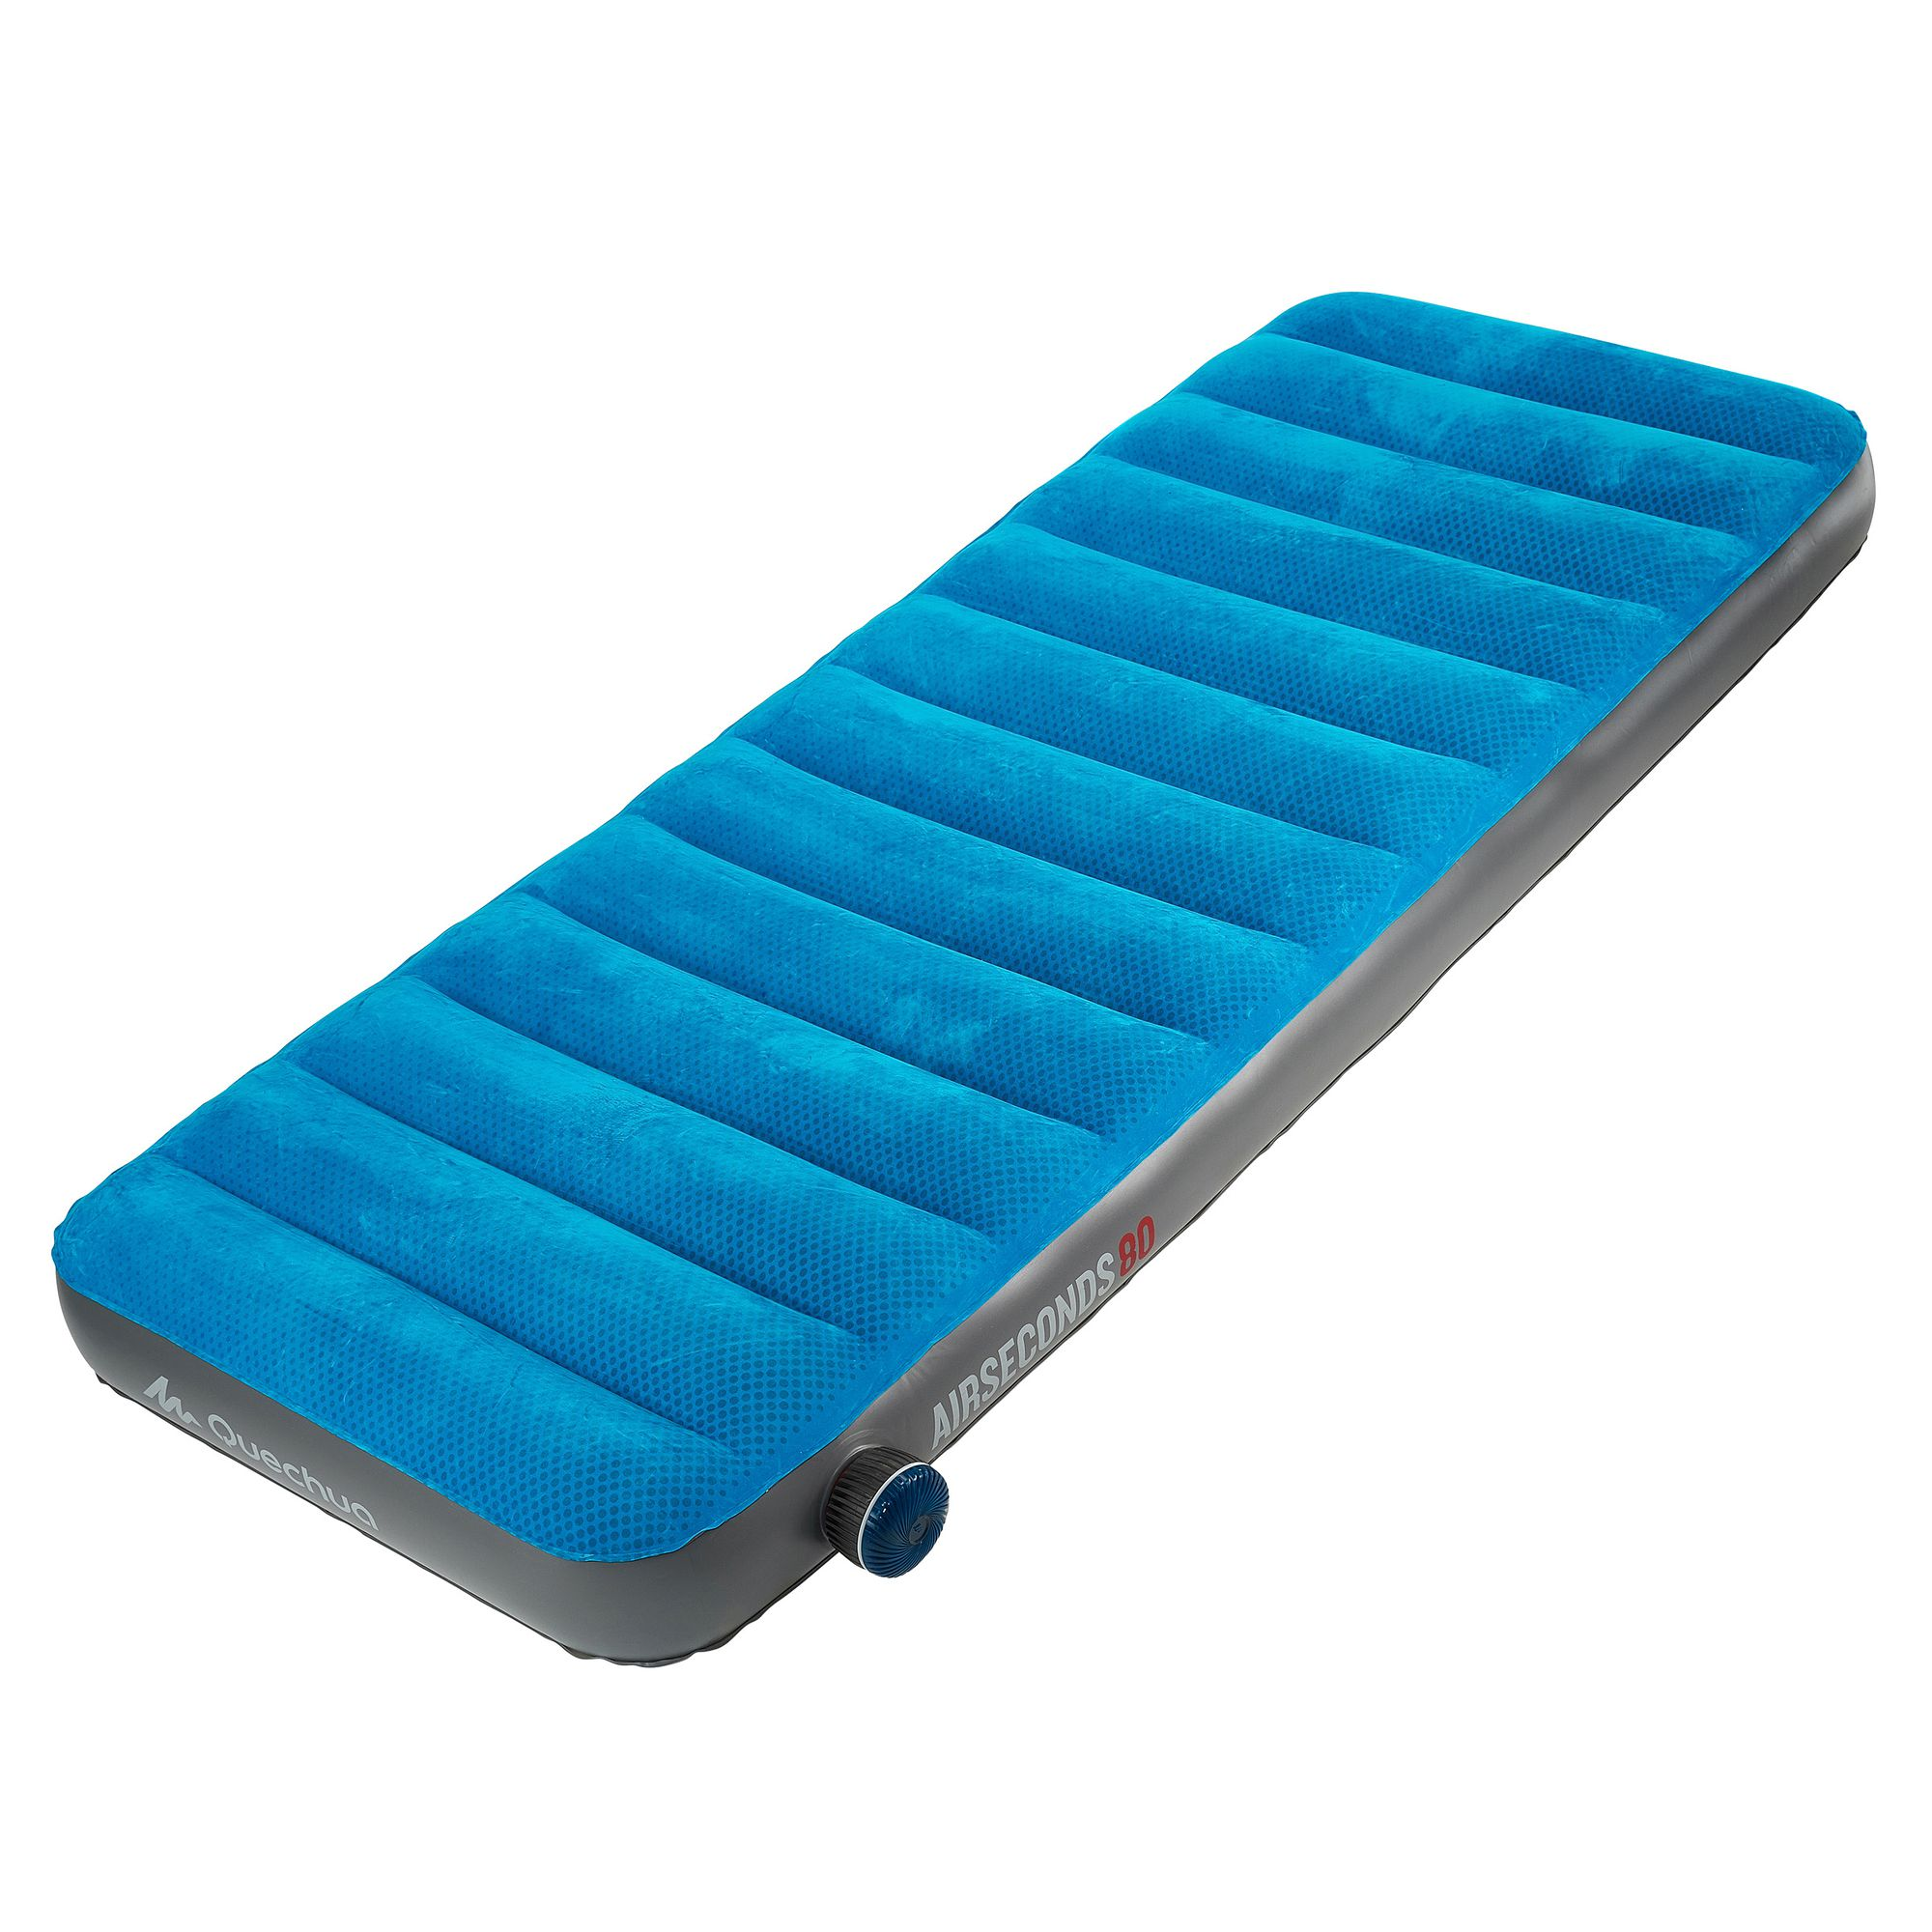 matelas gonflable de camping air seconds 80 1 pers clubs collectivit s decathlon pro. Black Bedroom Furniture Sets. Home Design Ideas